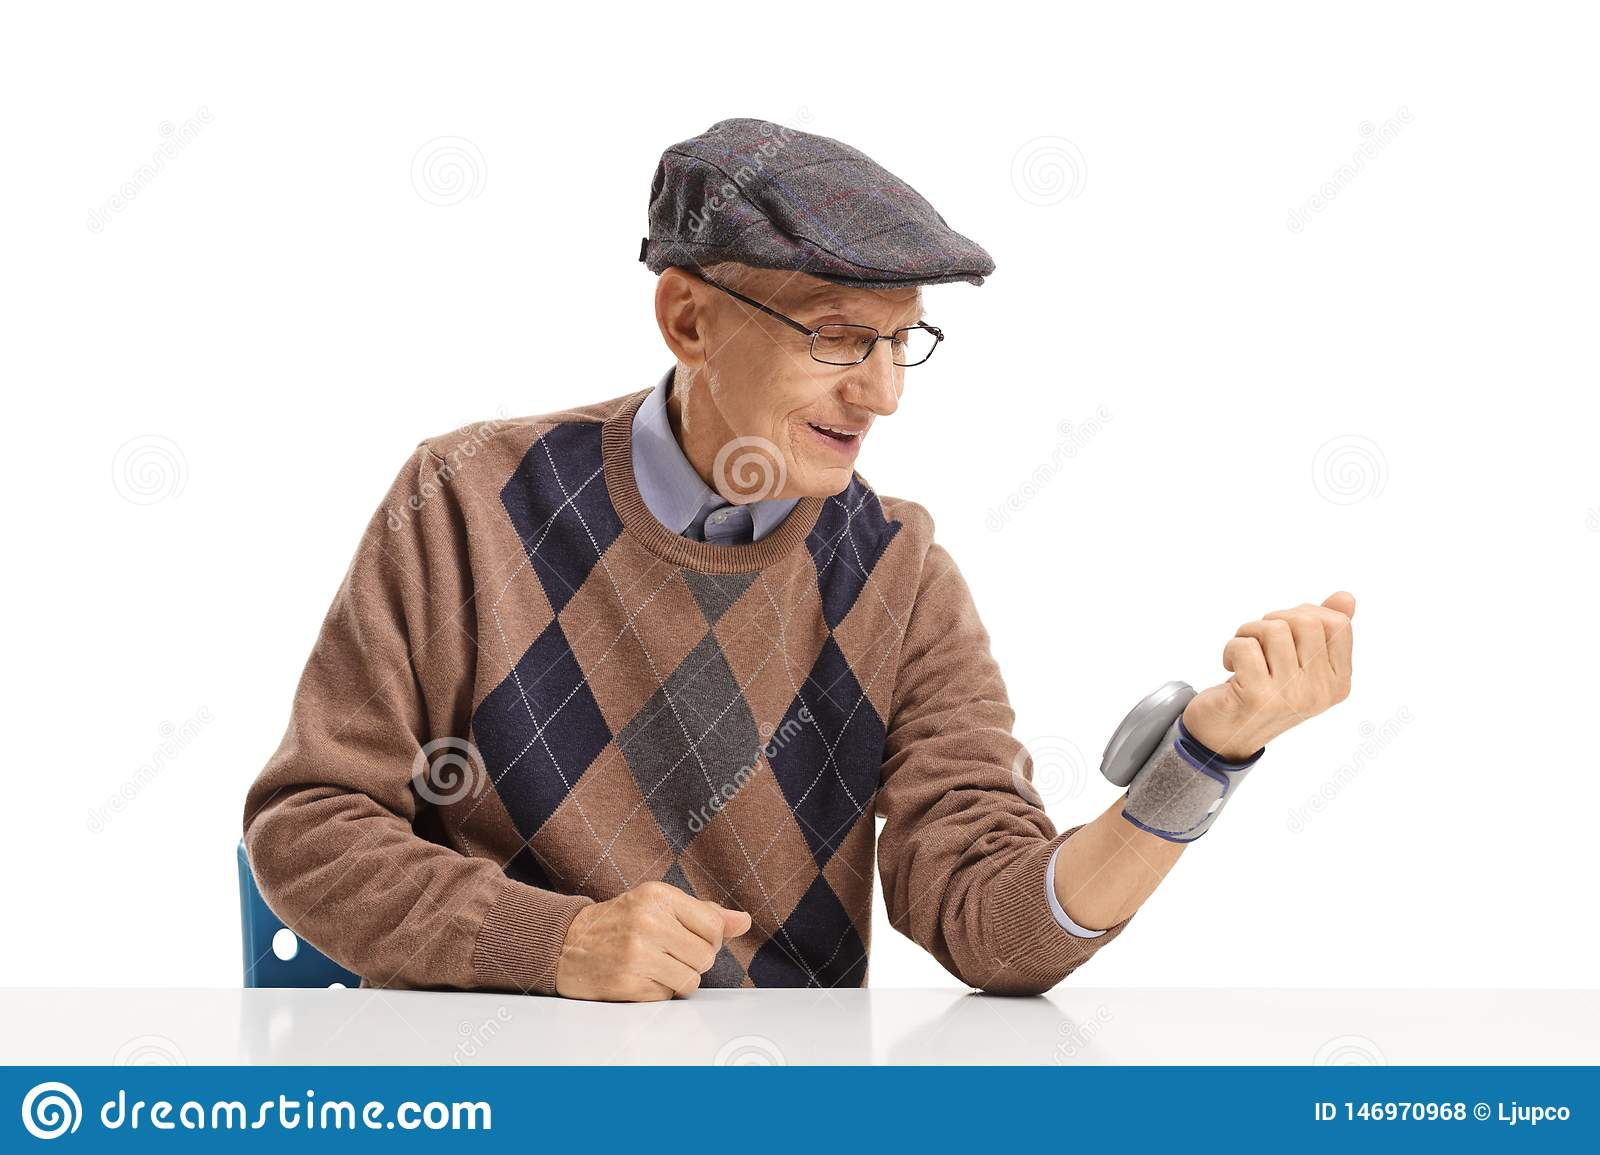 Elderly man measuring blood pressure with a wrist device